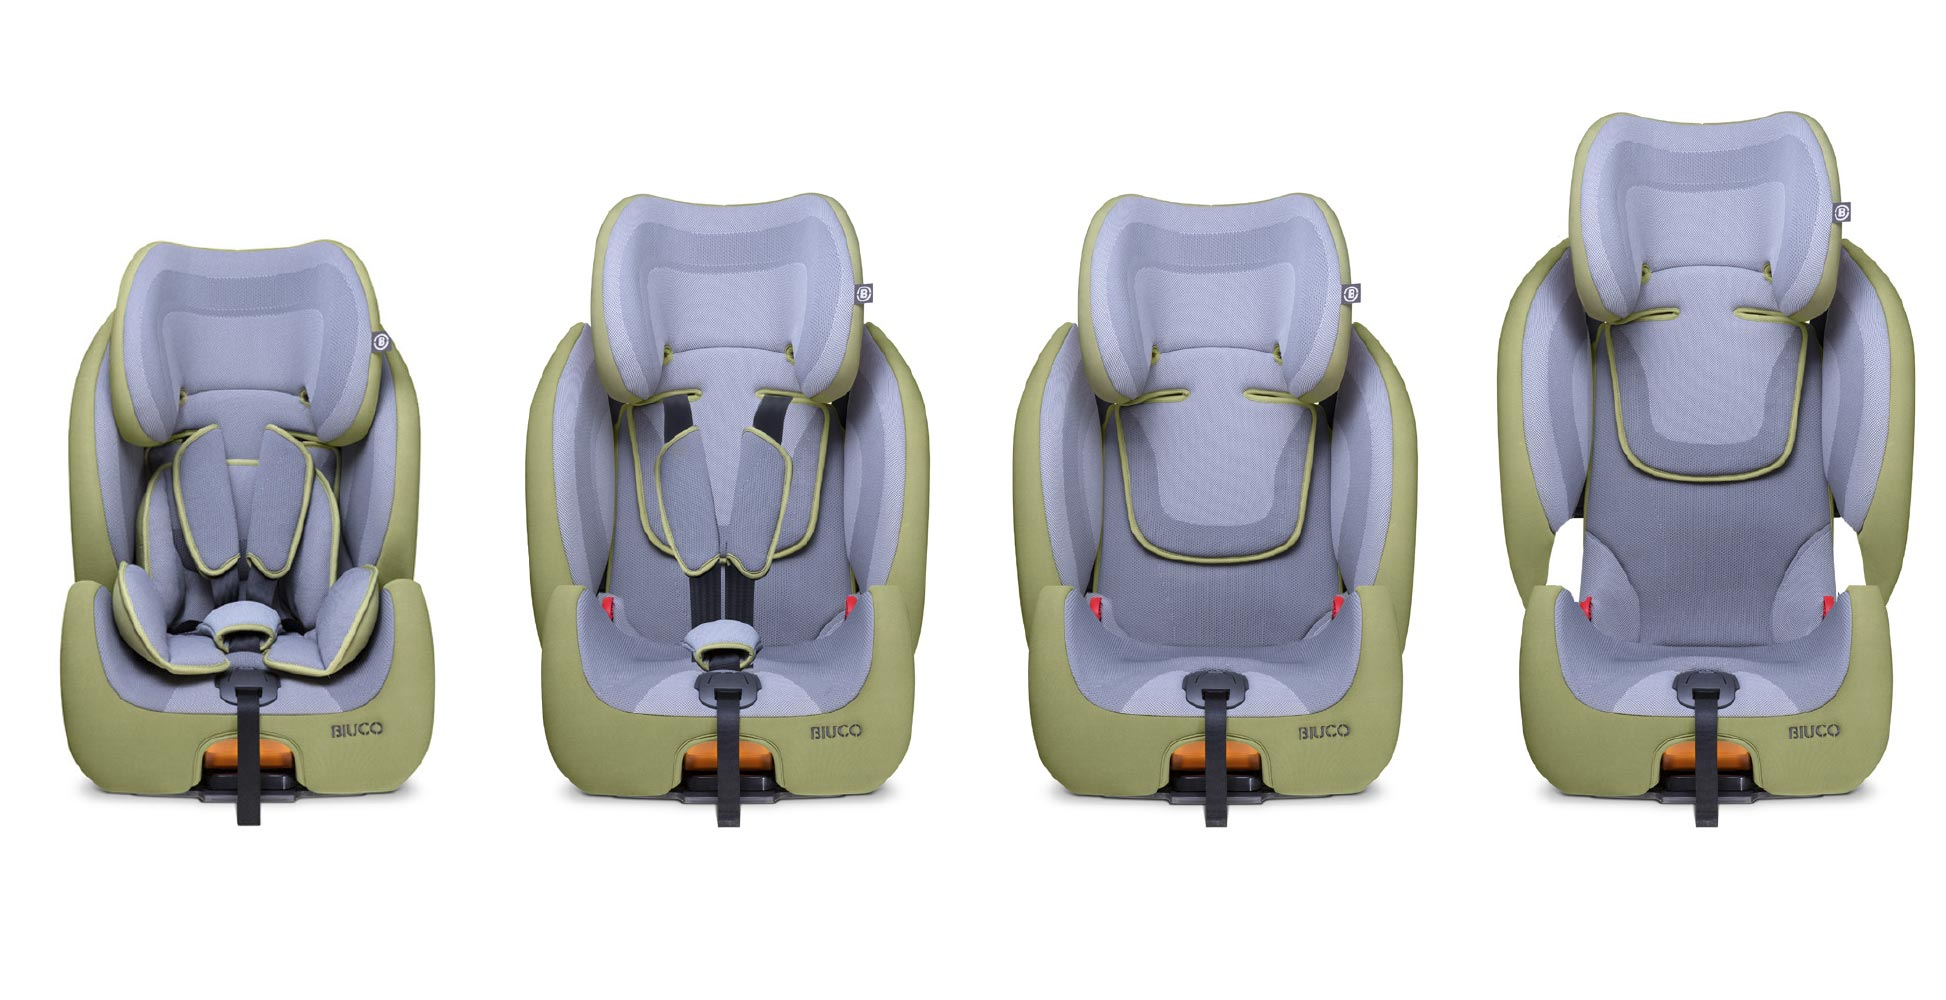 Child Car Seats Design: Biuco Mars G123